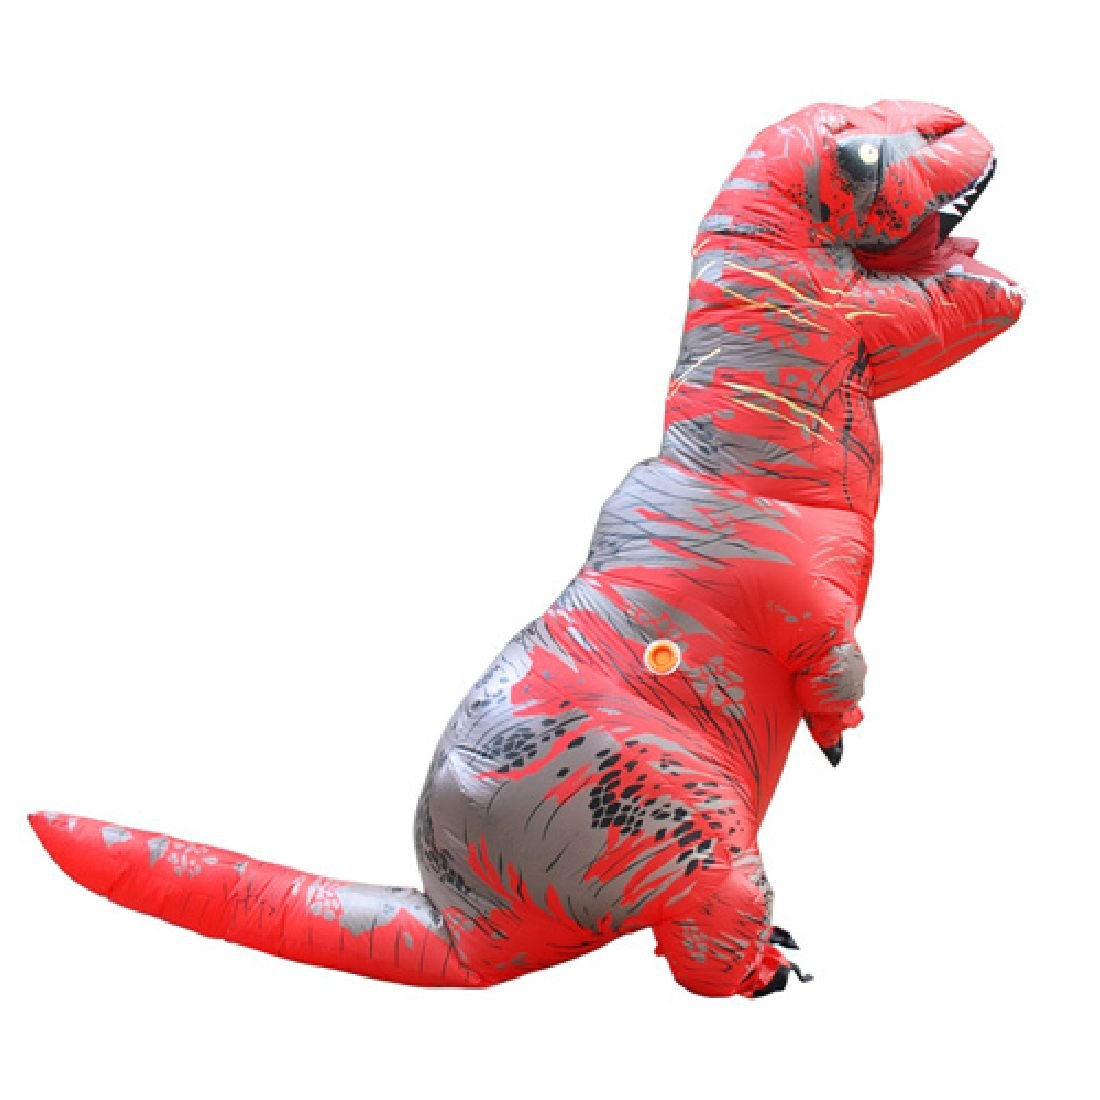 Halloween Costume Adult Inflatable Dinosaur Costume Fancy Dress by Crystalbella Inflatable Cos